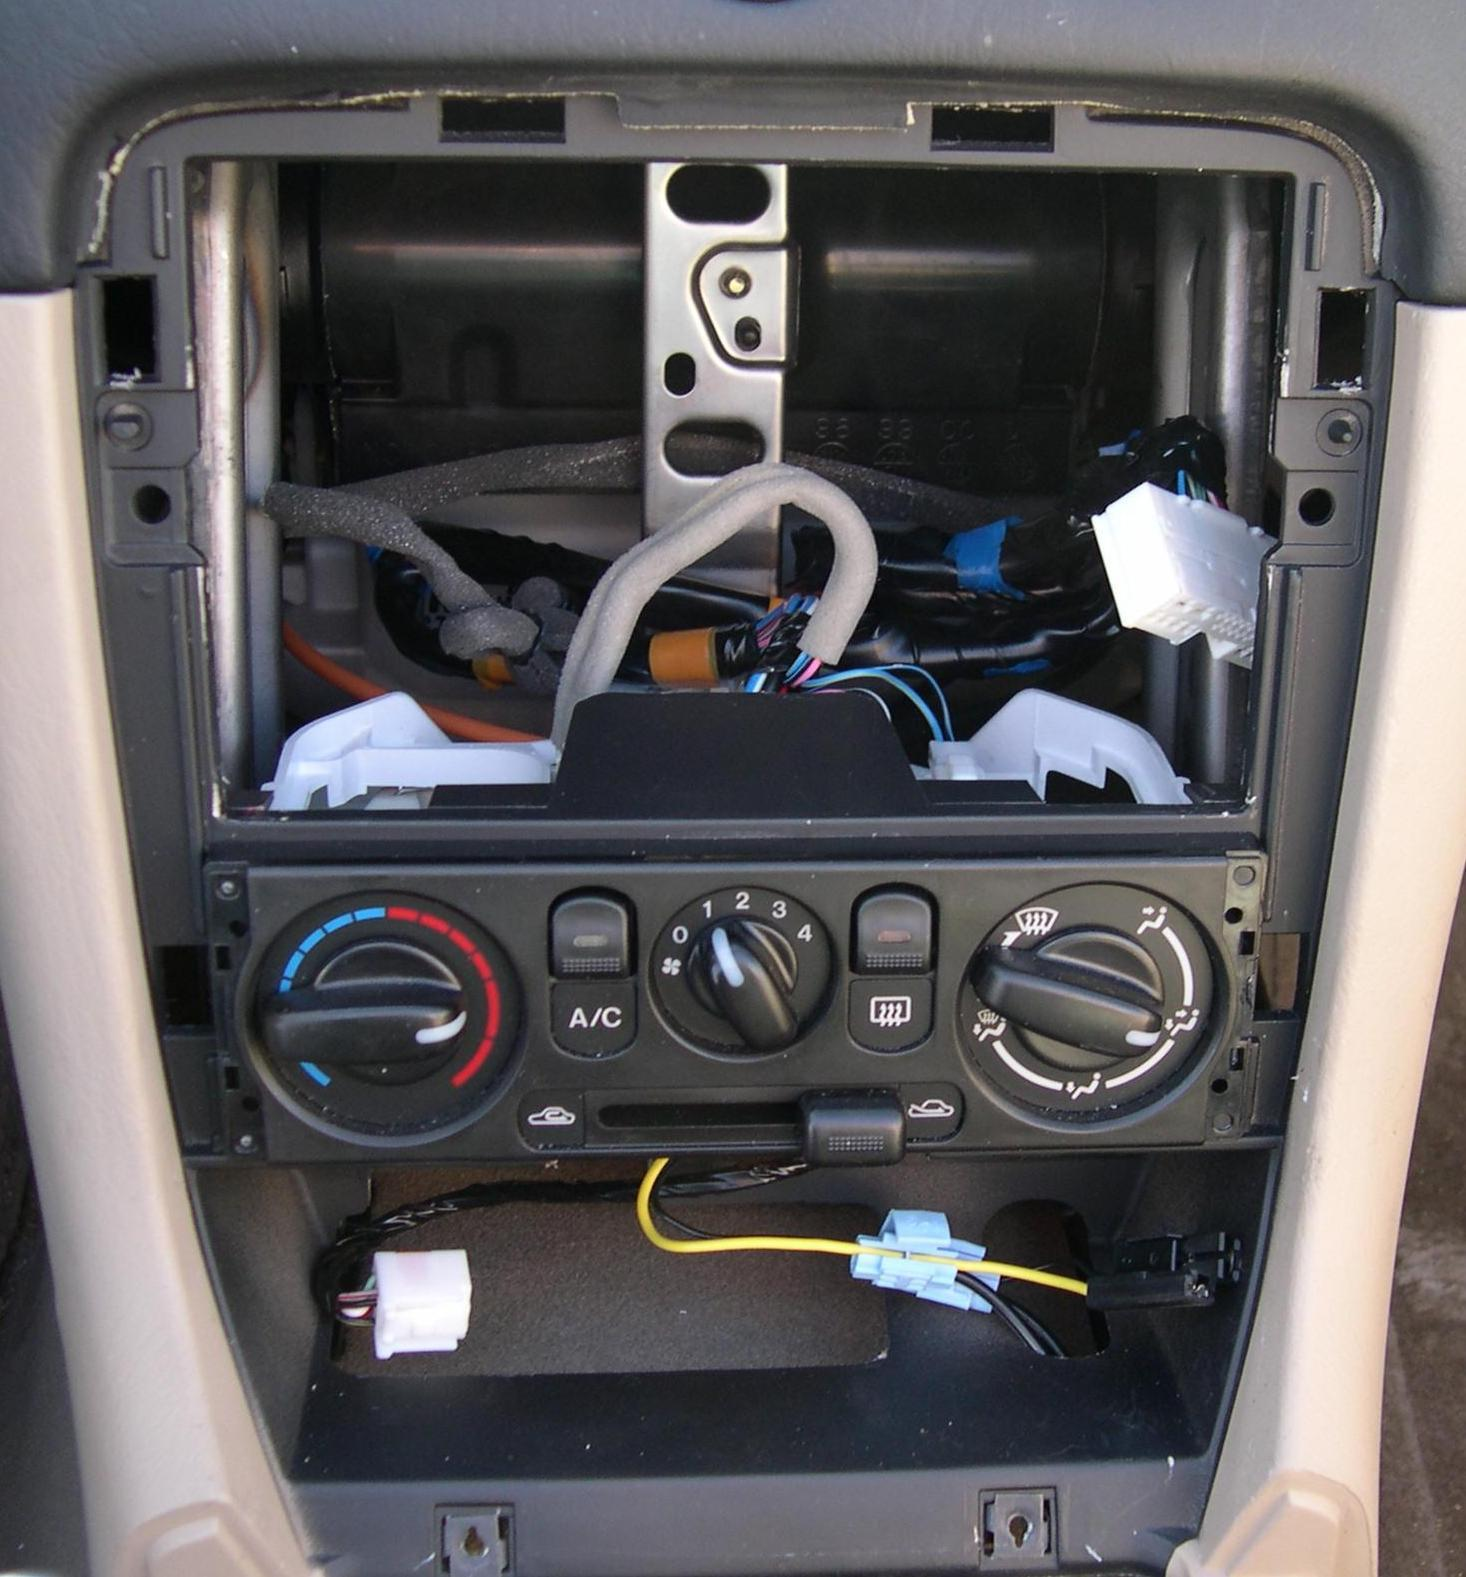 The Mazda Nb Oem Audio System Faq Sound Wiring Diagram 2001 Radio Out Photo Stephen Foskett